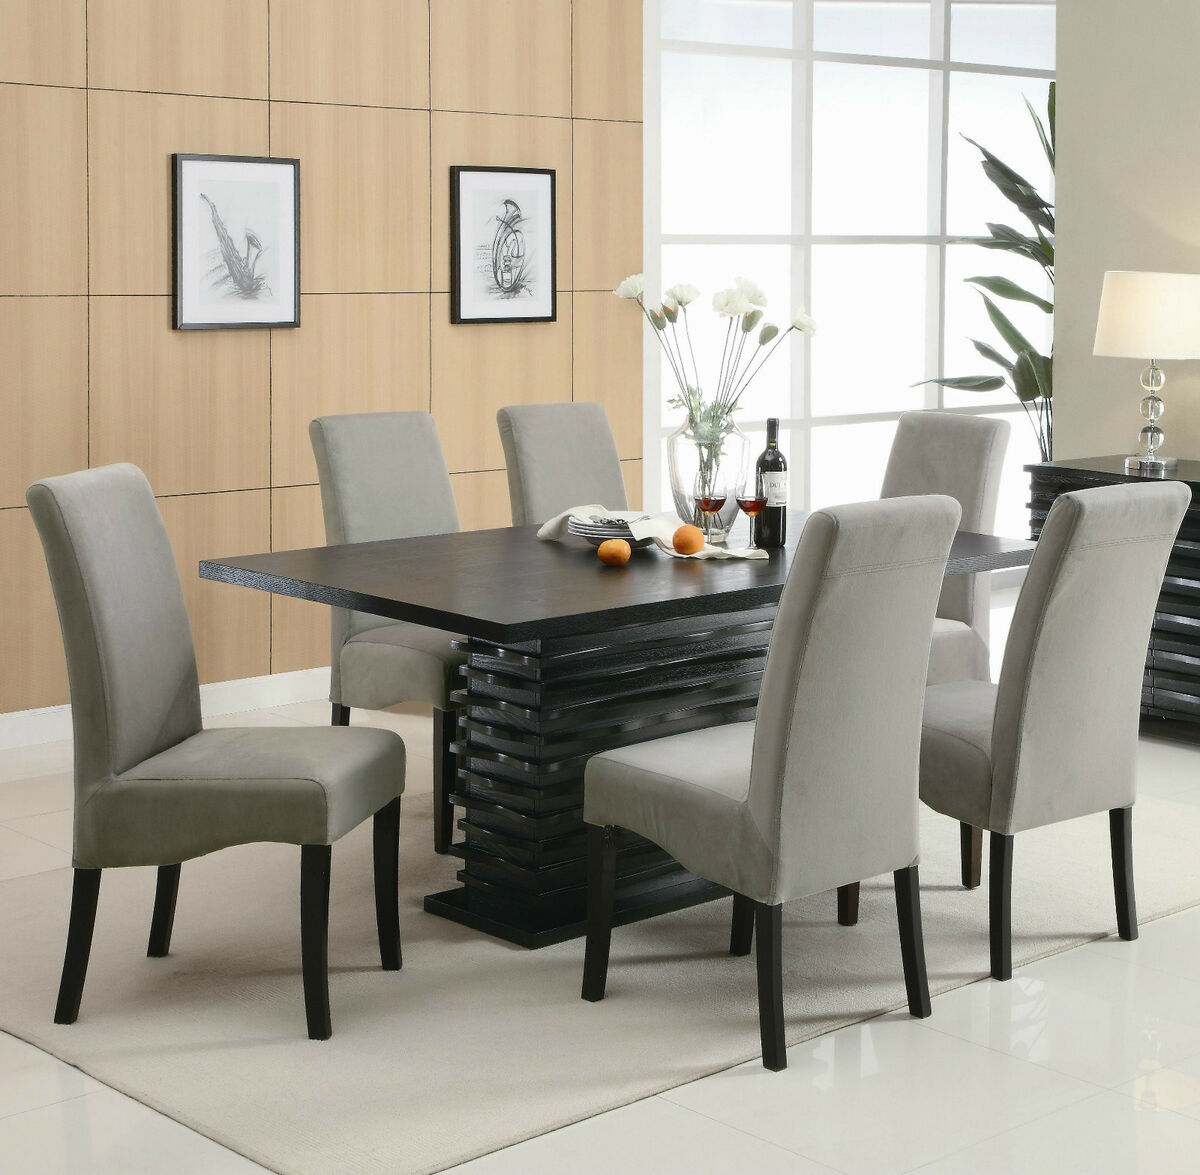 Contemporary black dining table chairs dining room for Designer dining chairs sale